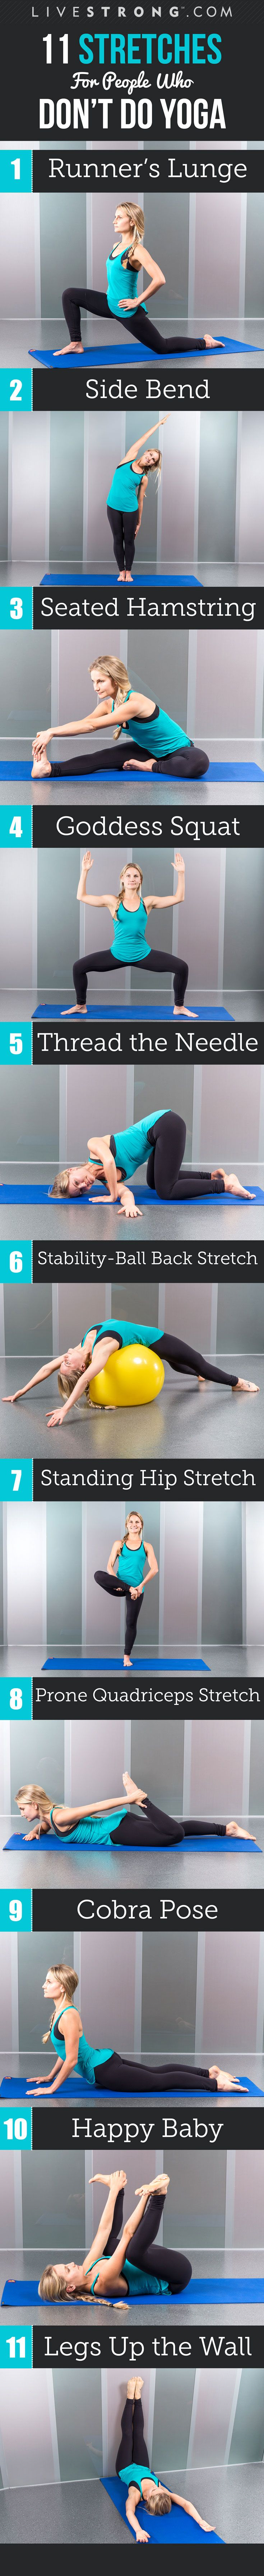 11 Stretches That Everyone Can Do!